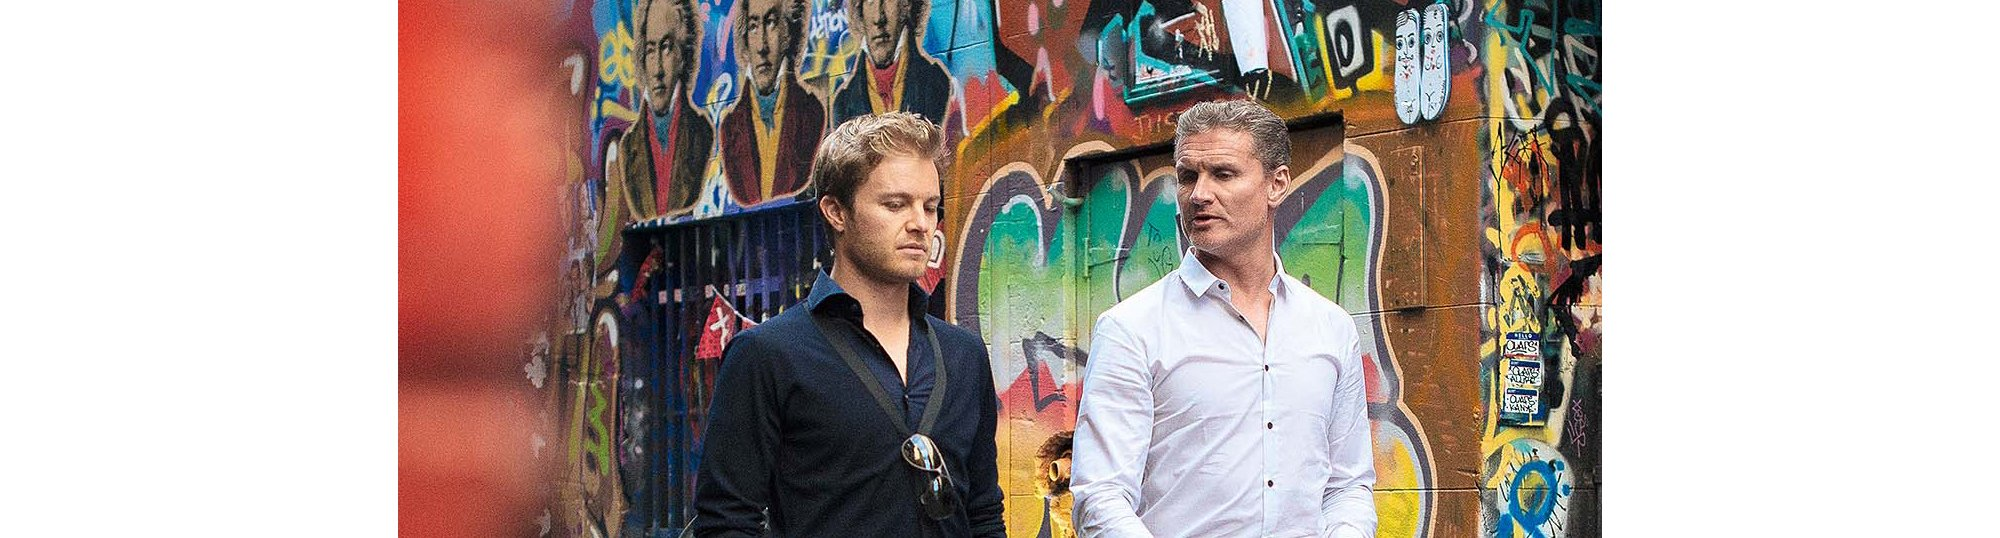 Nico Rosberg wearing a dark blue shirt and sunglasses by BOSS, David Coulthard wearing a white shirt by BOSS